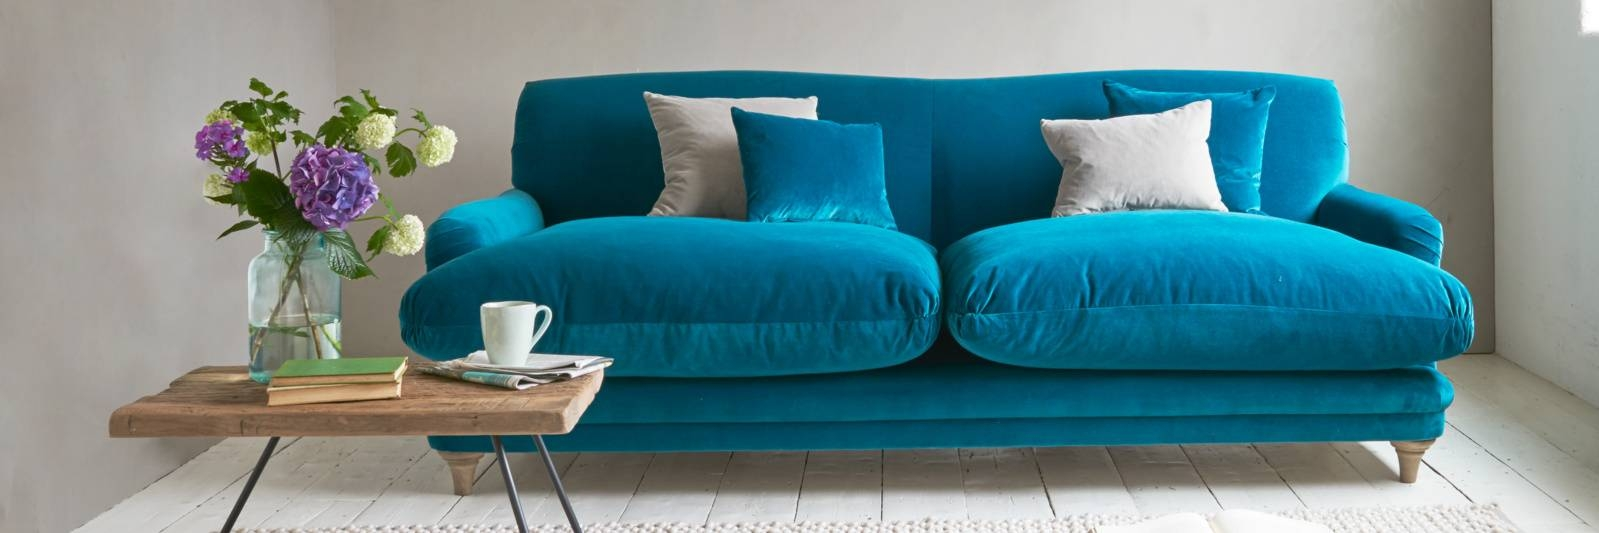 Blue Sofas | Lovely Fabric Sofas | Loaf pertaining to Blue Sofas (Image 9 of 15)